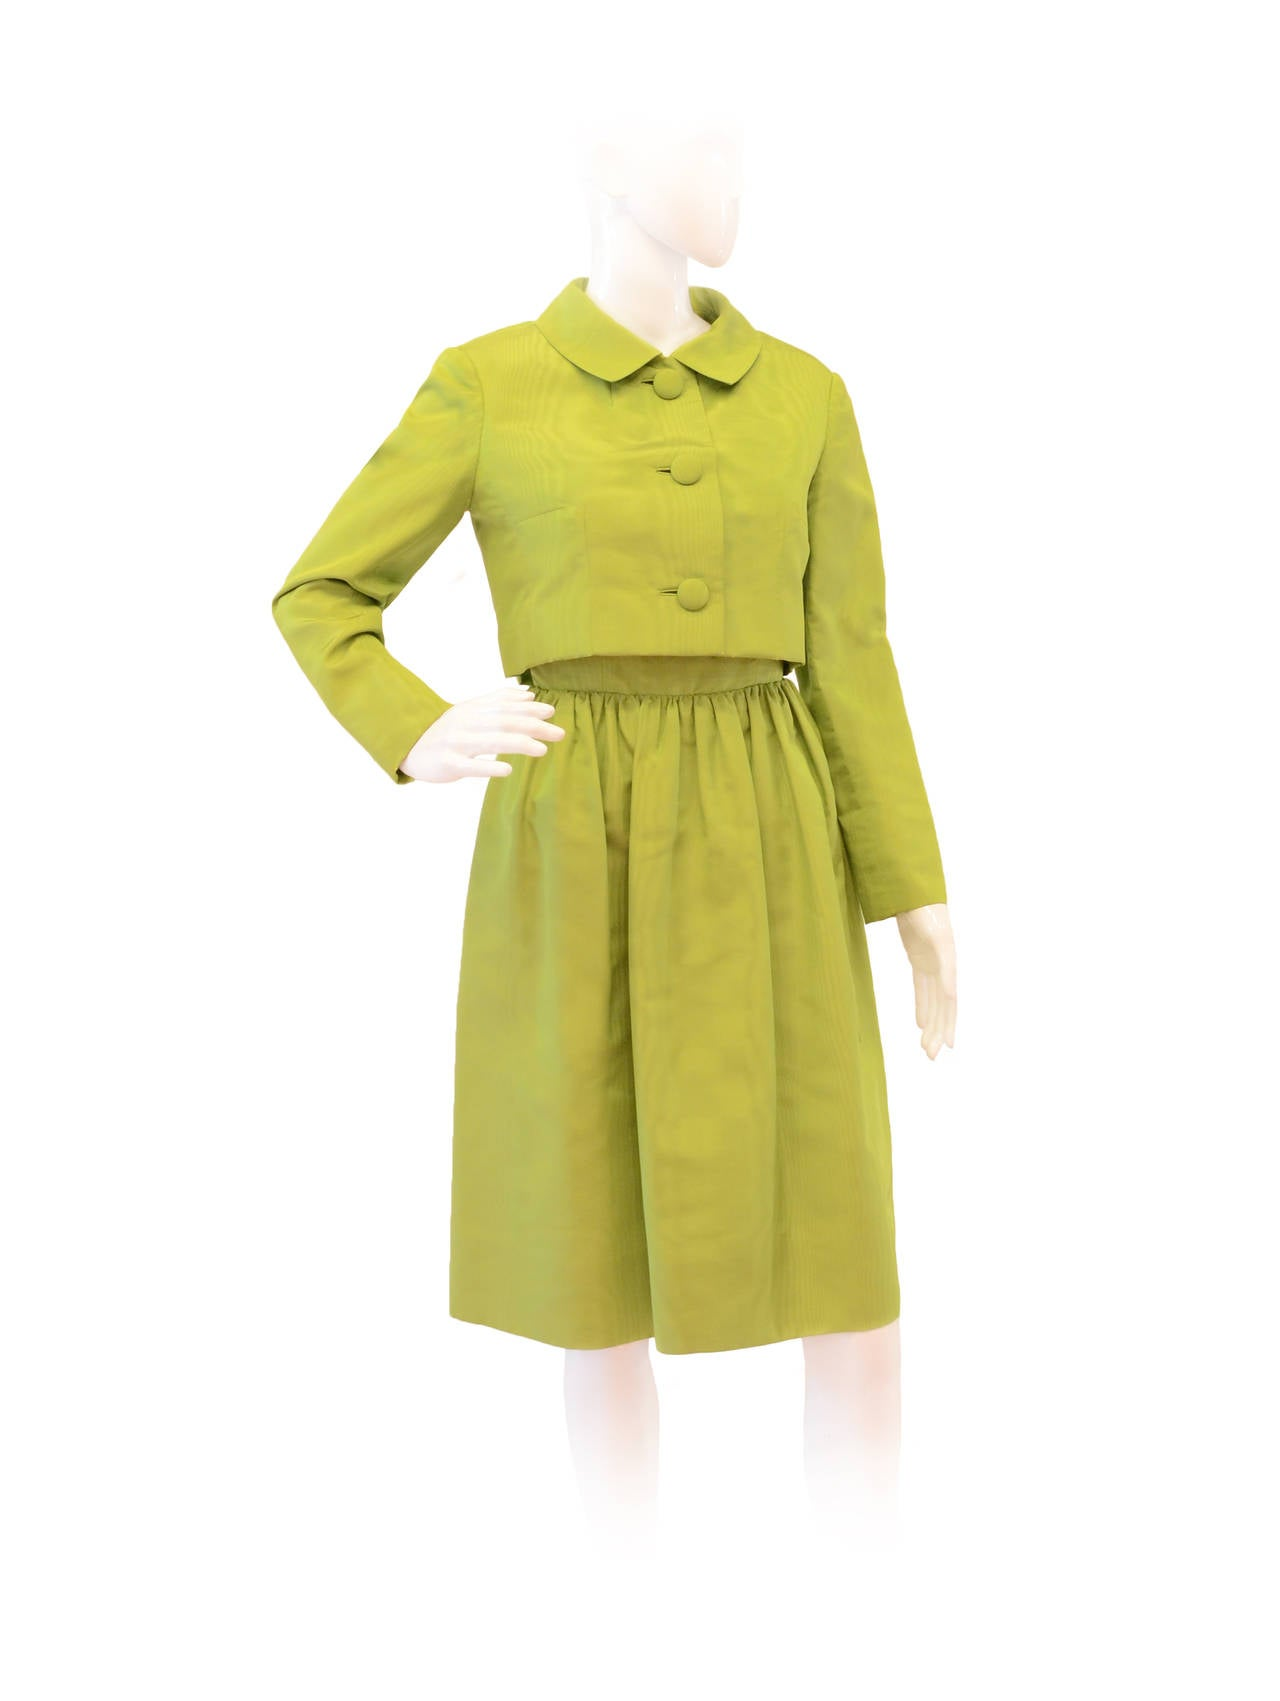 Christian Dior 2pc Dress Suit For Sale at 1stdibs